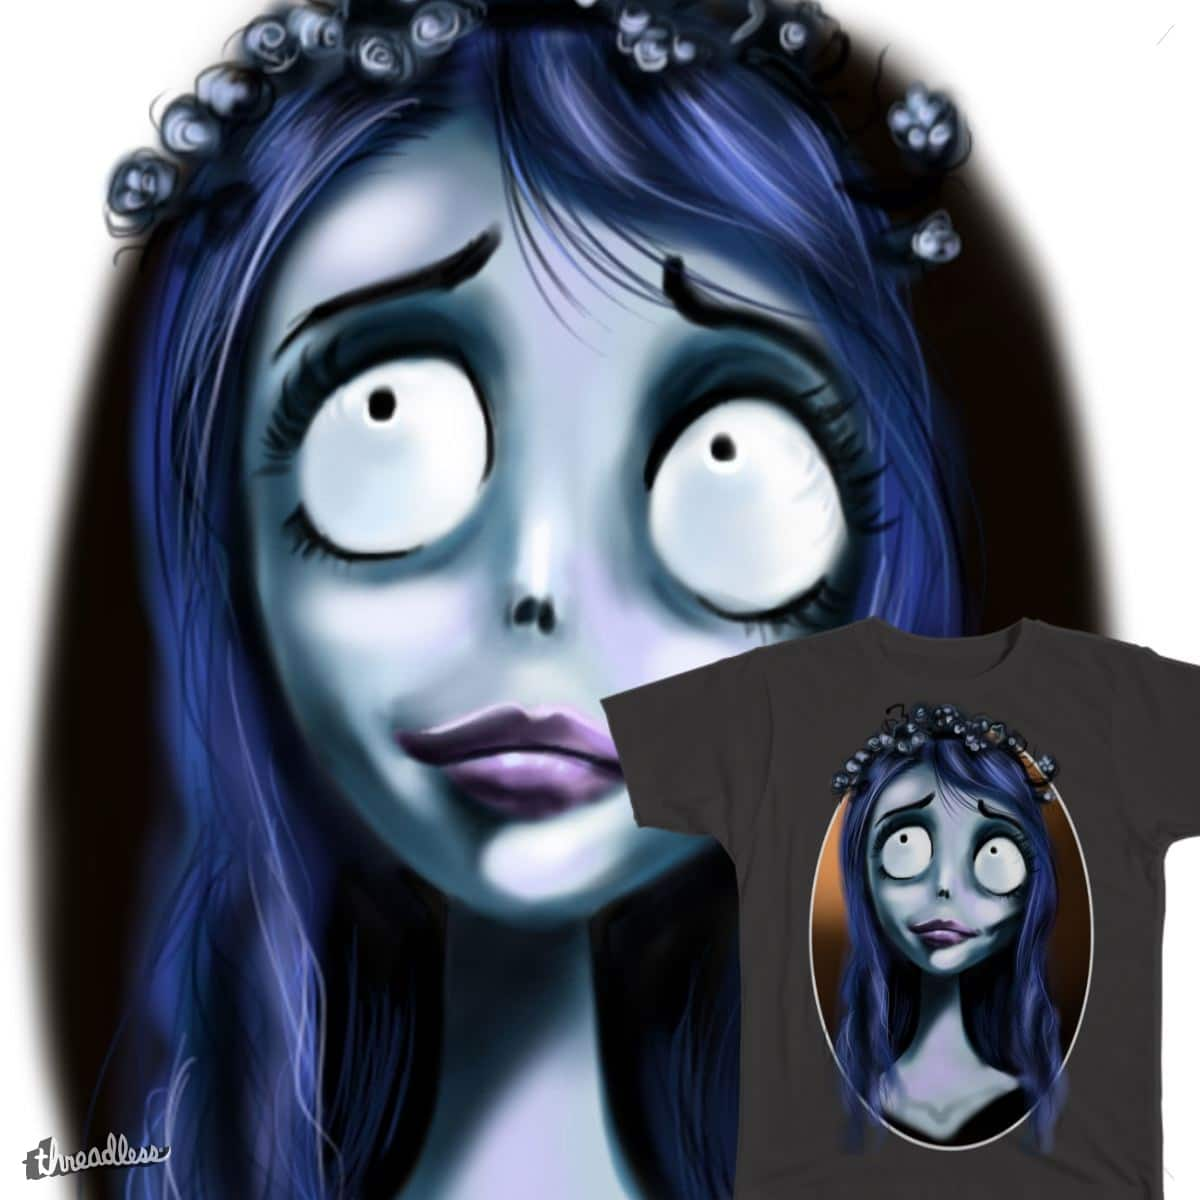 Emily the Corpse by LillianRu on Threadless